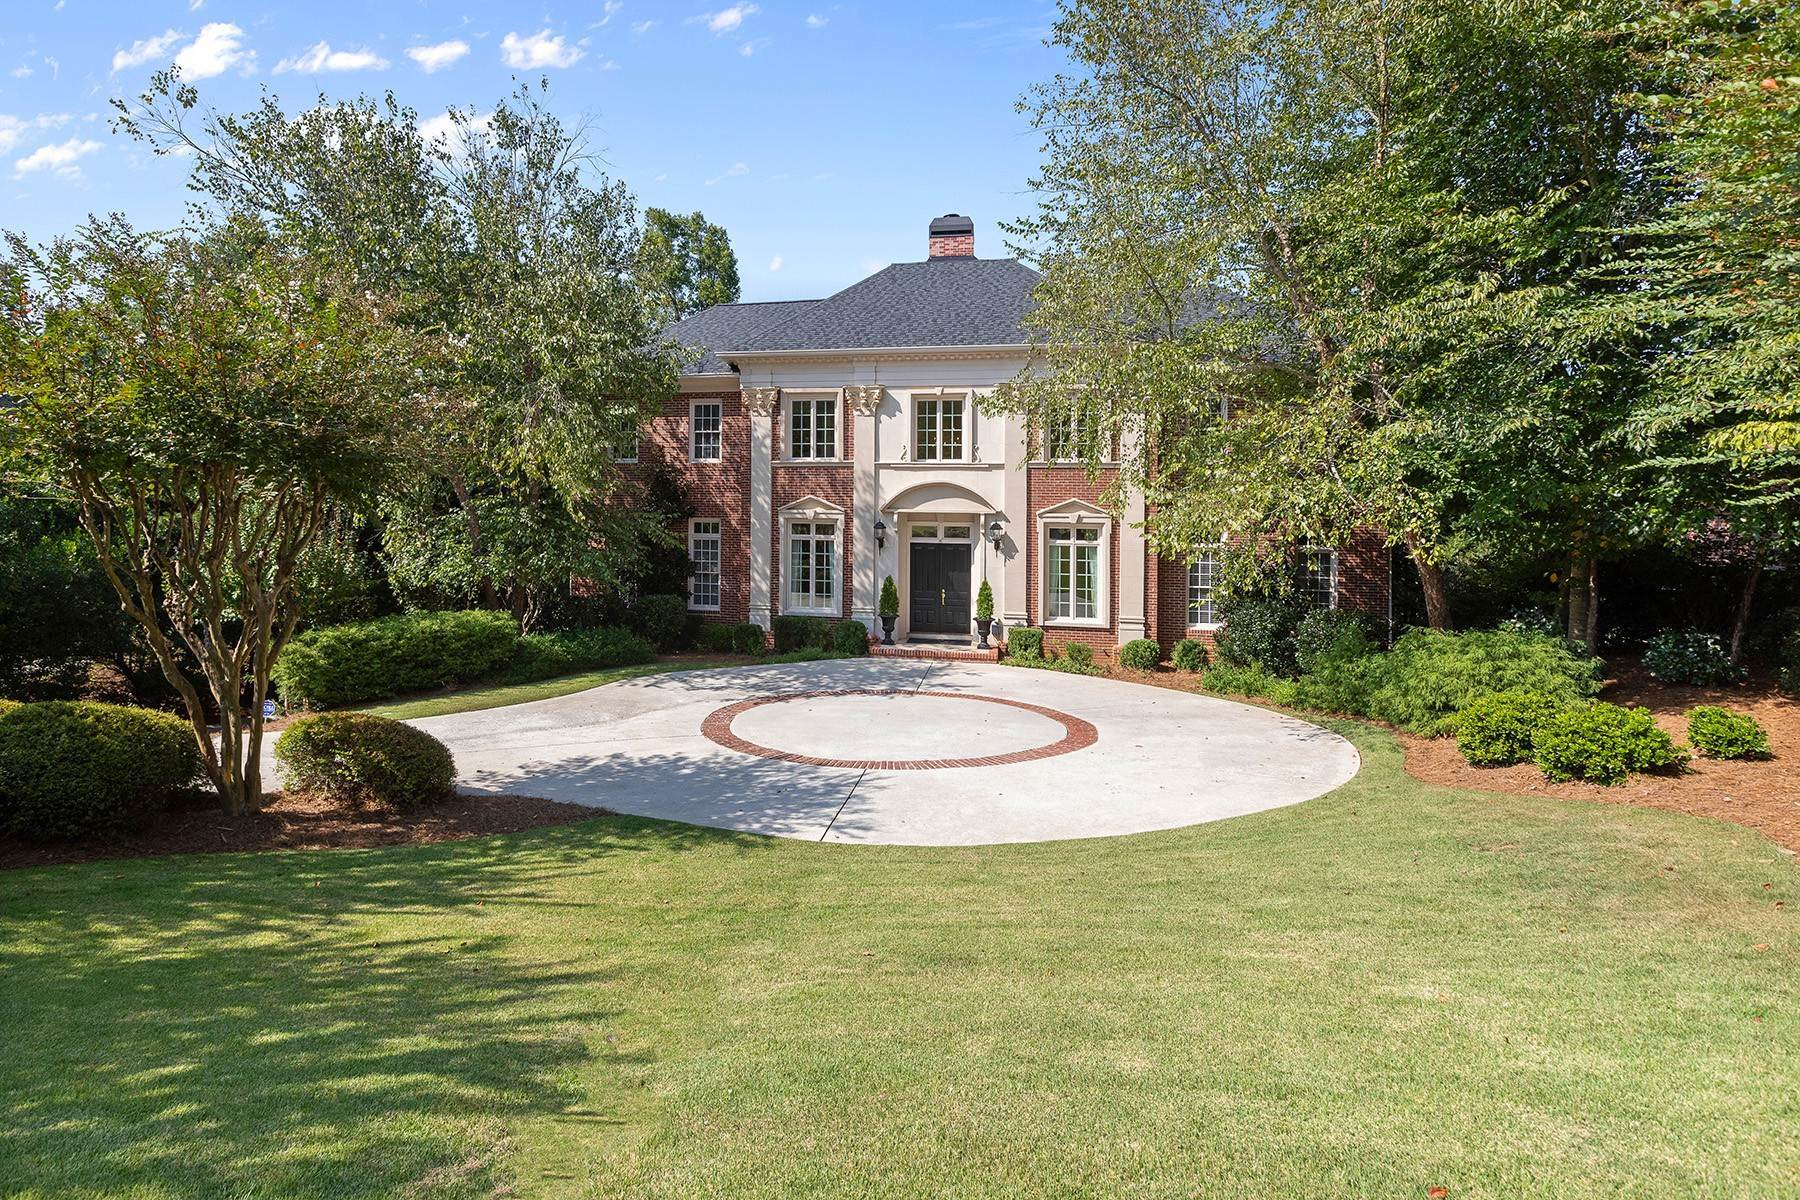 Single Family Homes for Active at Stunning Riverfront Home in Peachtree Corners Overlooking AAC Golf Course 3831 River Mansions Drive Peachtree Corners, Georgia 30096 United States